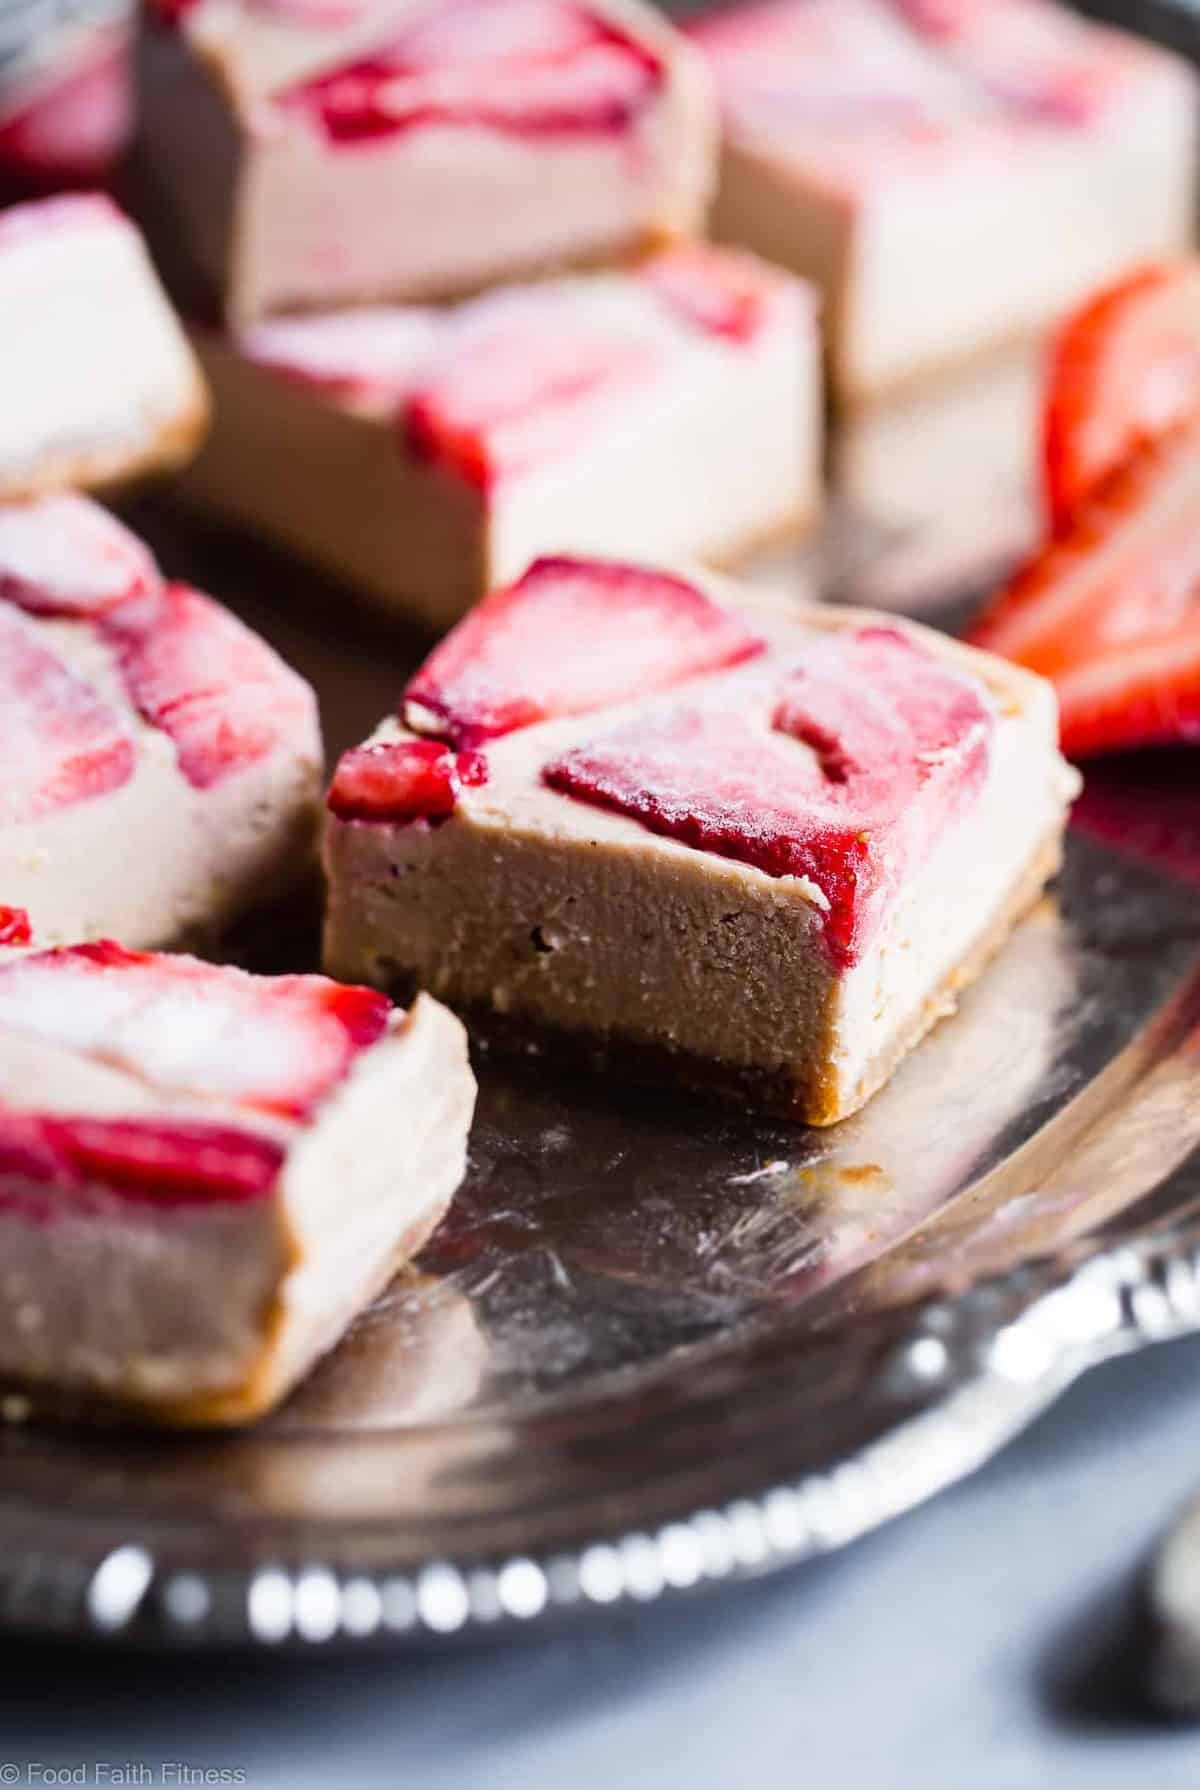 No Bake Gluten Free Paleo Lemon Bars - This EASY vegan lemon bar recipe has the flavor of sweet strawberries and creamy cashews with zippy lemon! A healthy, paleo friendly, dairy free treat for the summer! | #Foodfaithfitness | #Dairyfree #Paleo #Vegan #Glutenfree #Nobake